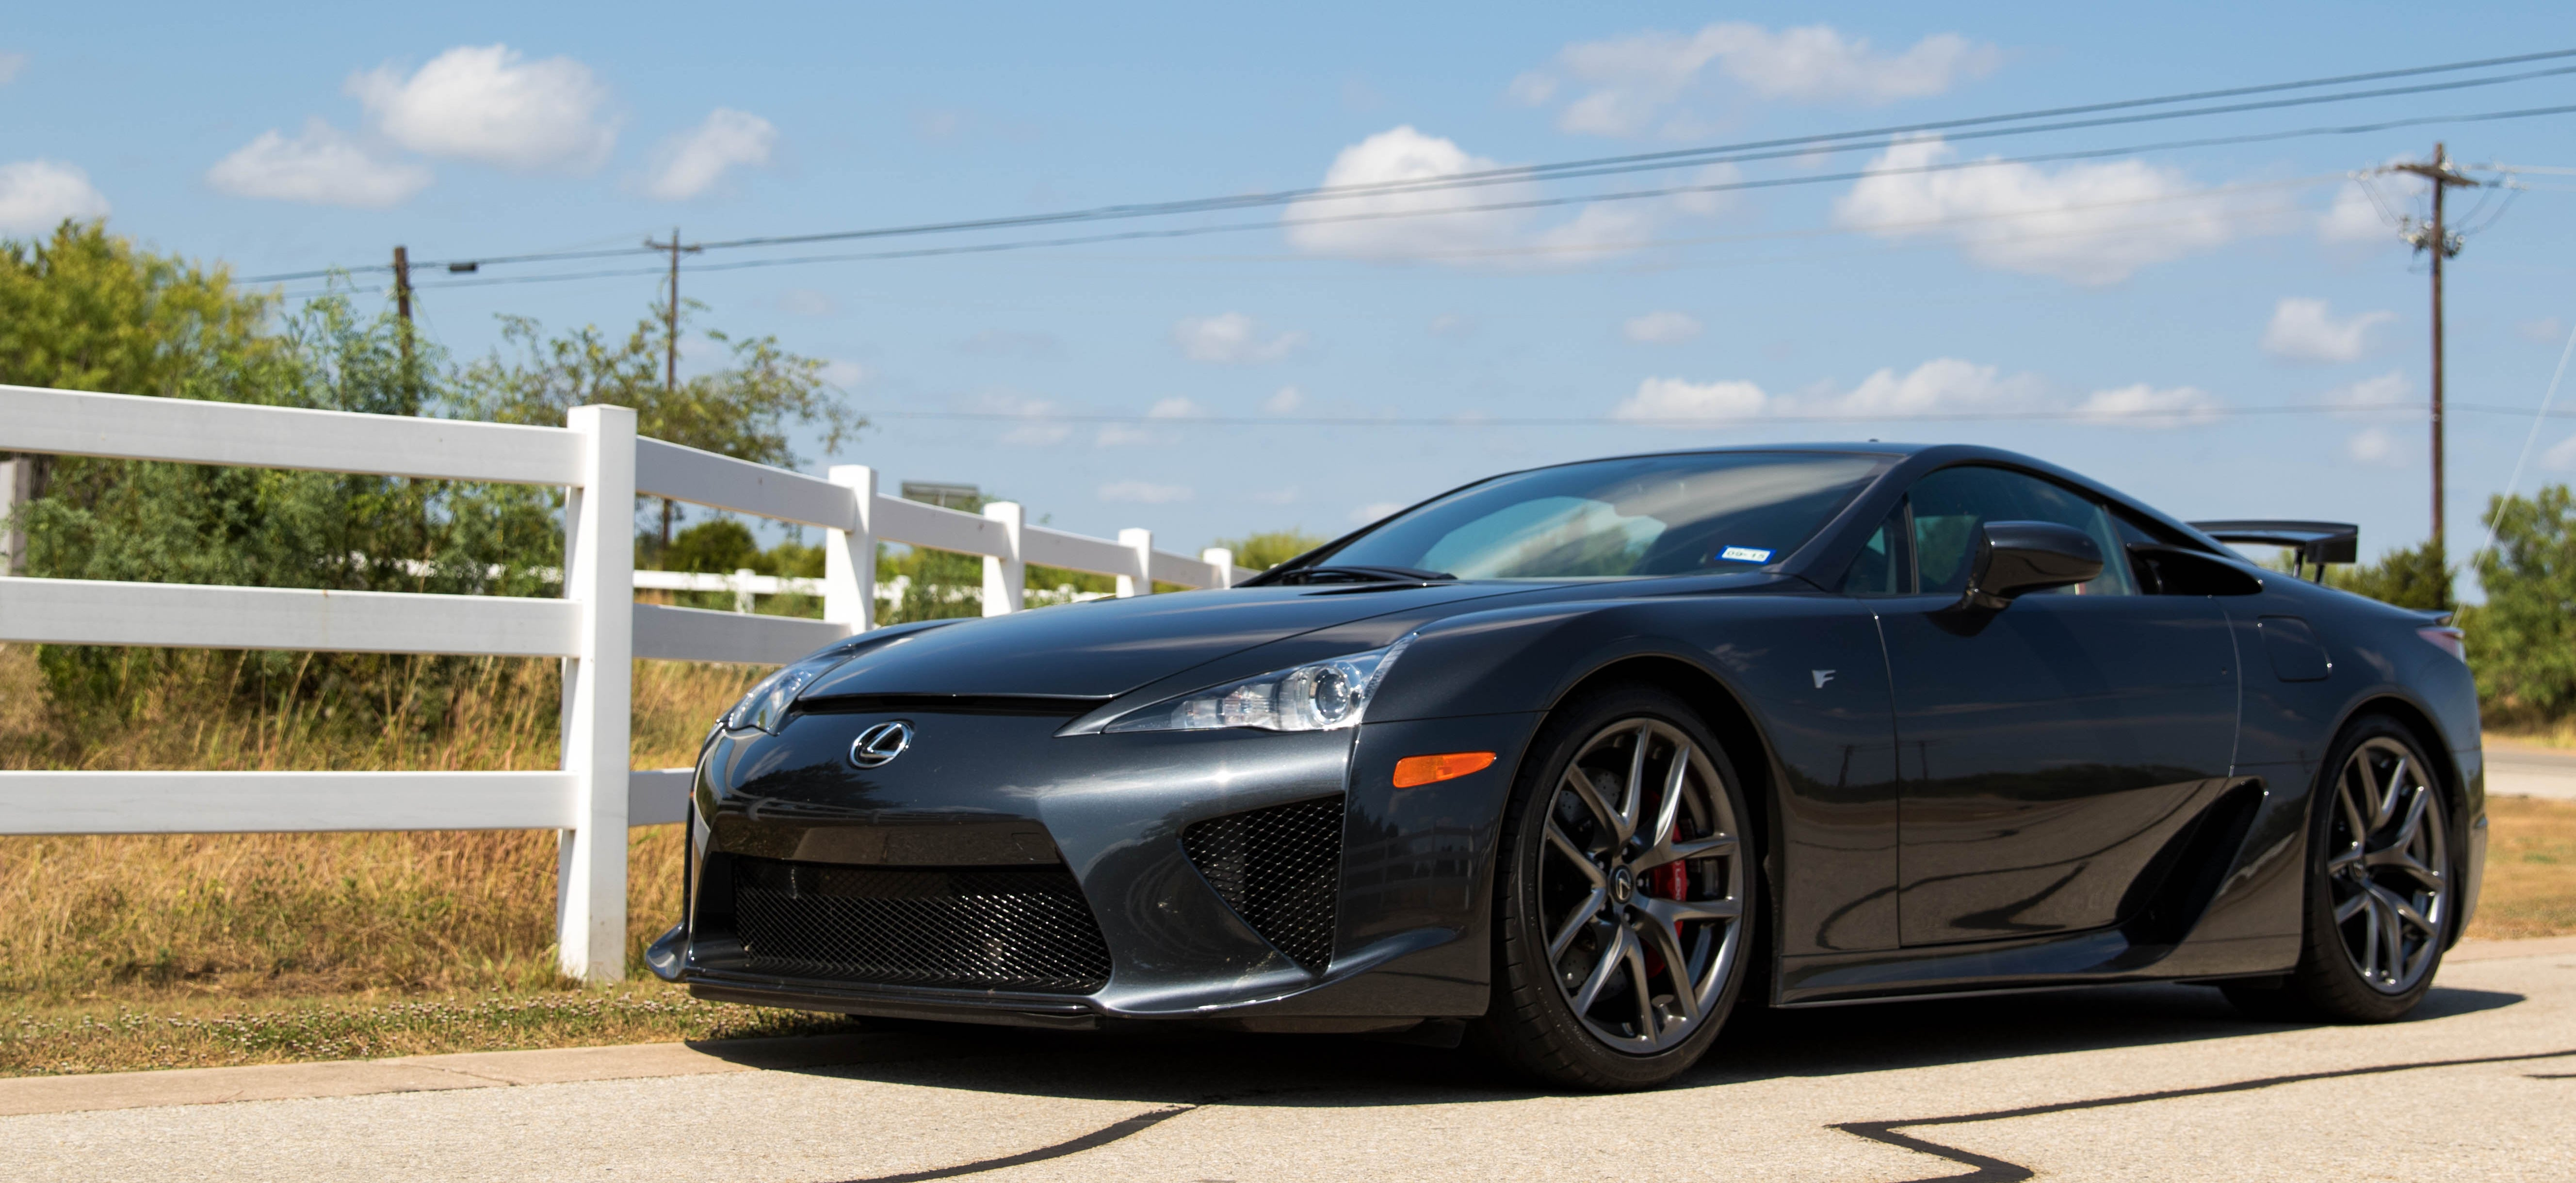 Lexus Lfa Wiring Diagram Guide And Troubleshooting Of 2001 Gs 300 Engine Scematic Is250 1998 Lx470 Ls400